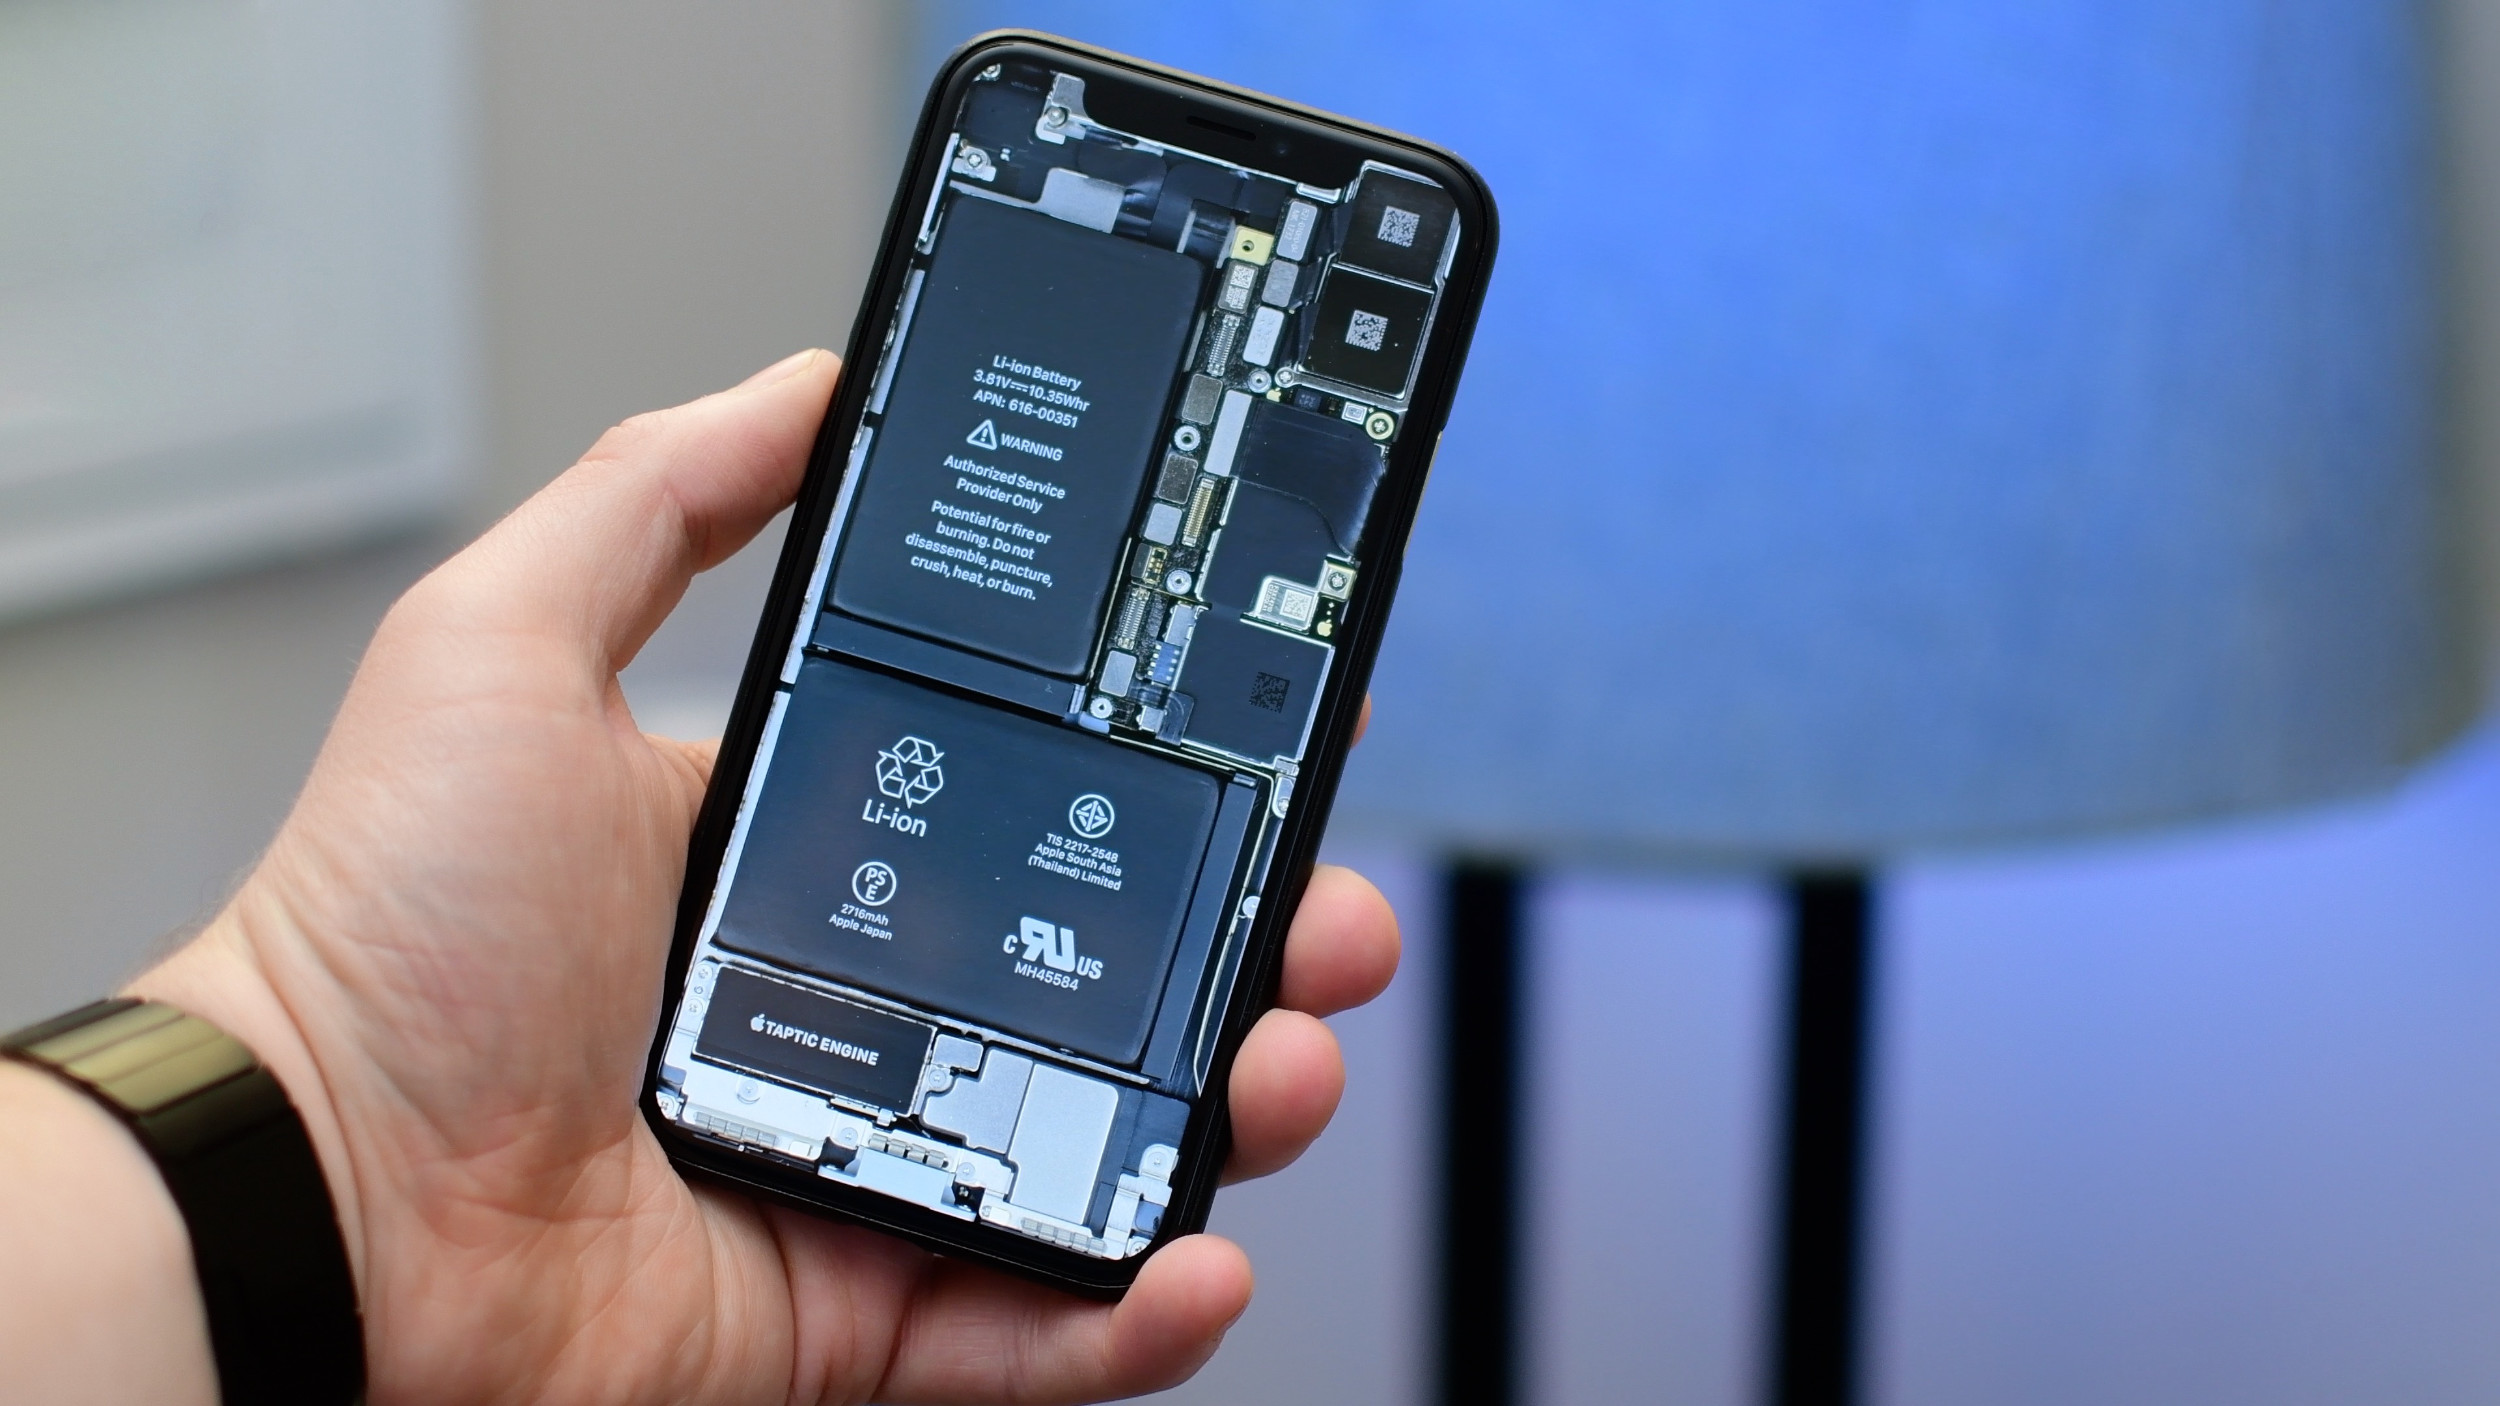 Iphone 8 Plus Internals Wallpaper Scarica Lo Sfondo Dell Interno Di Iphone X